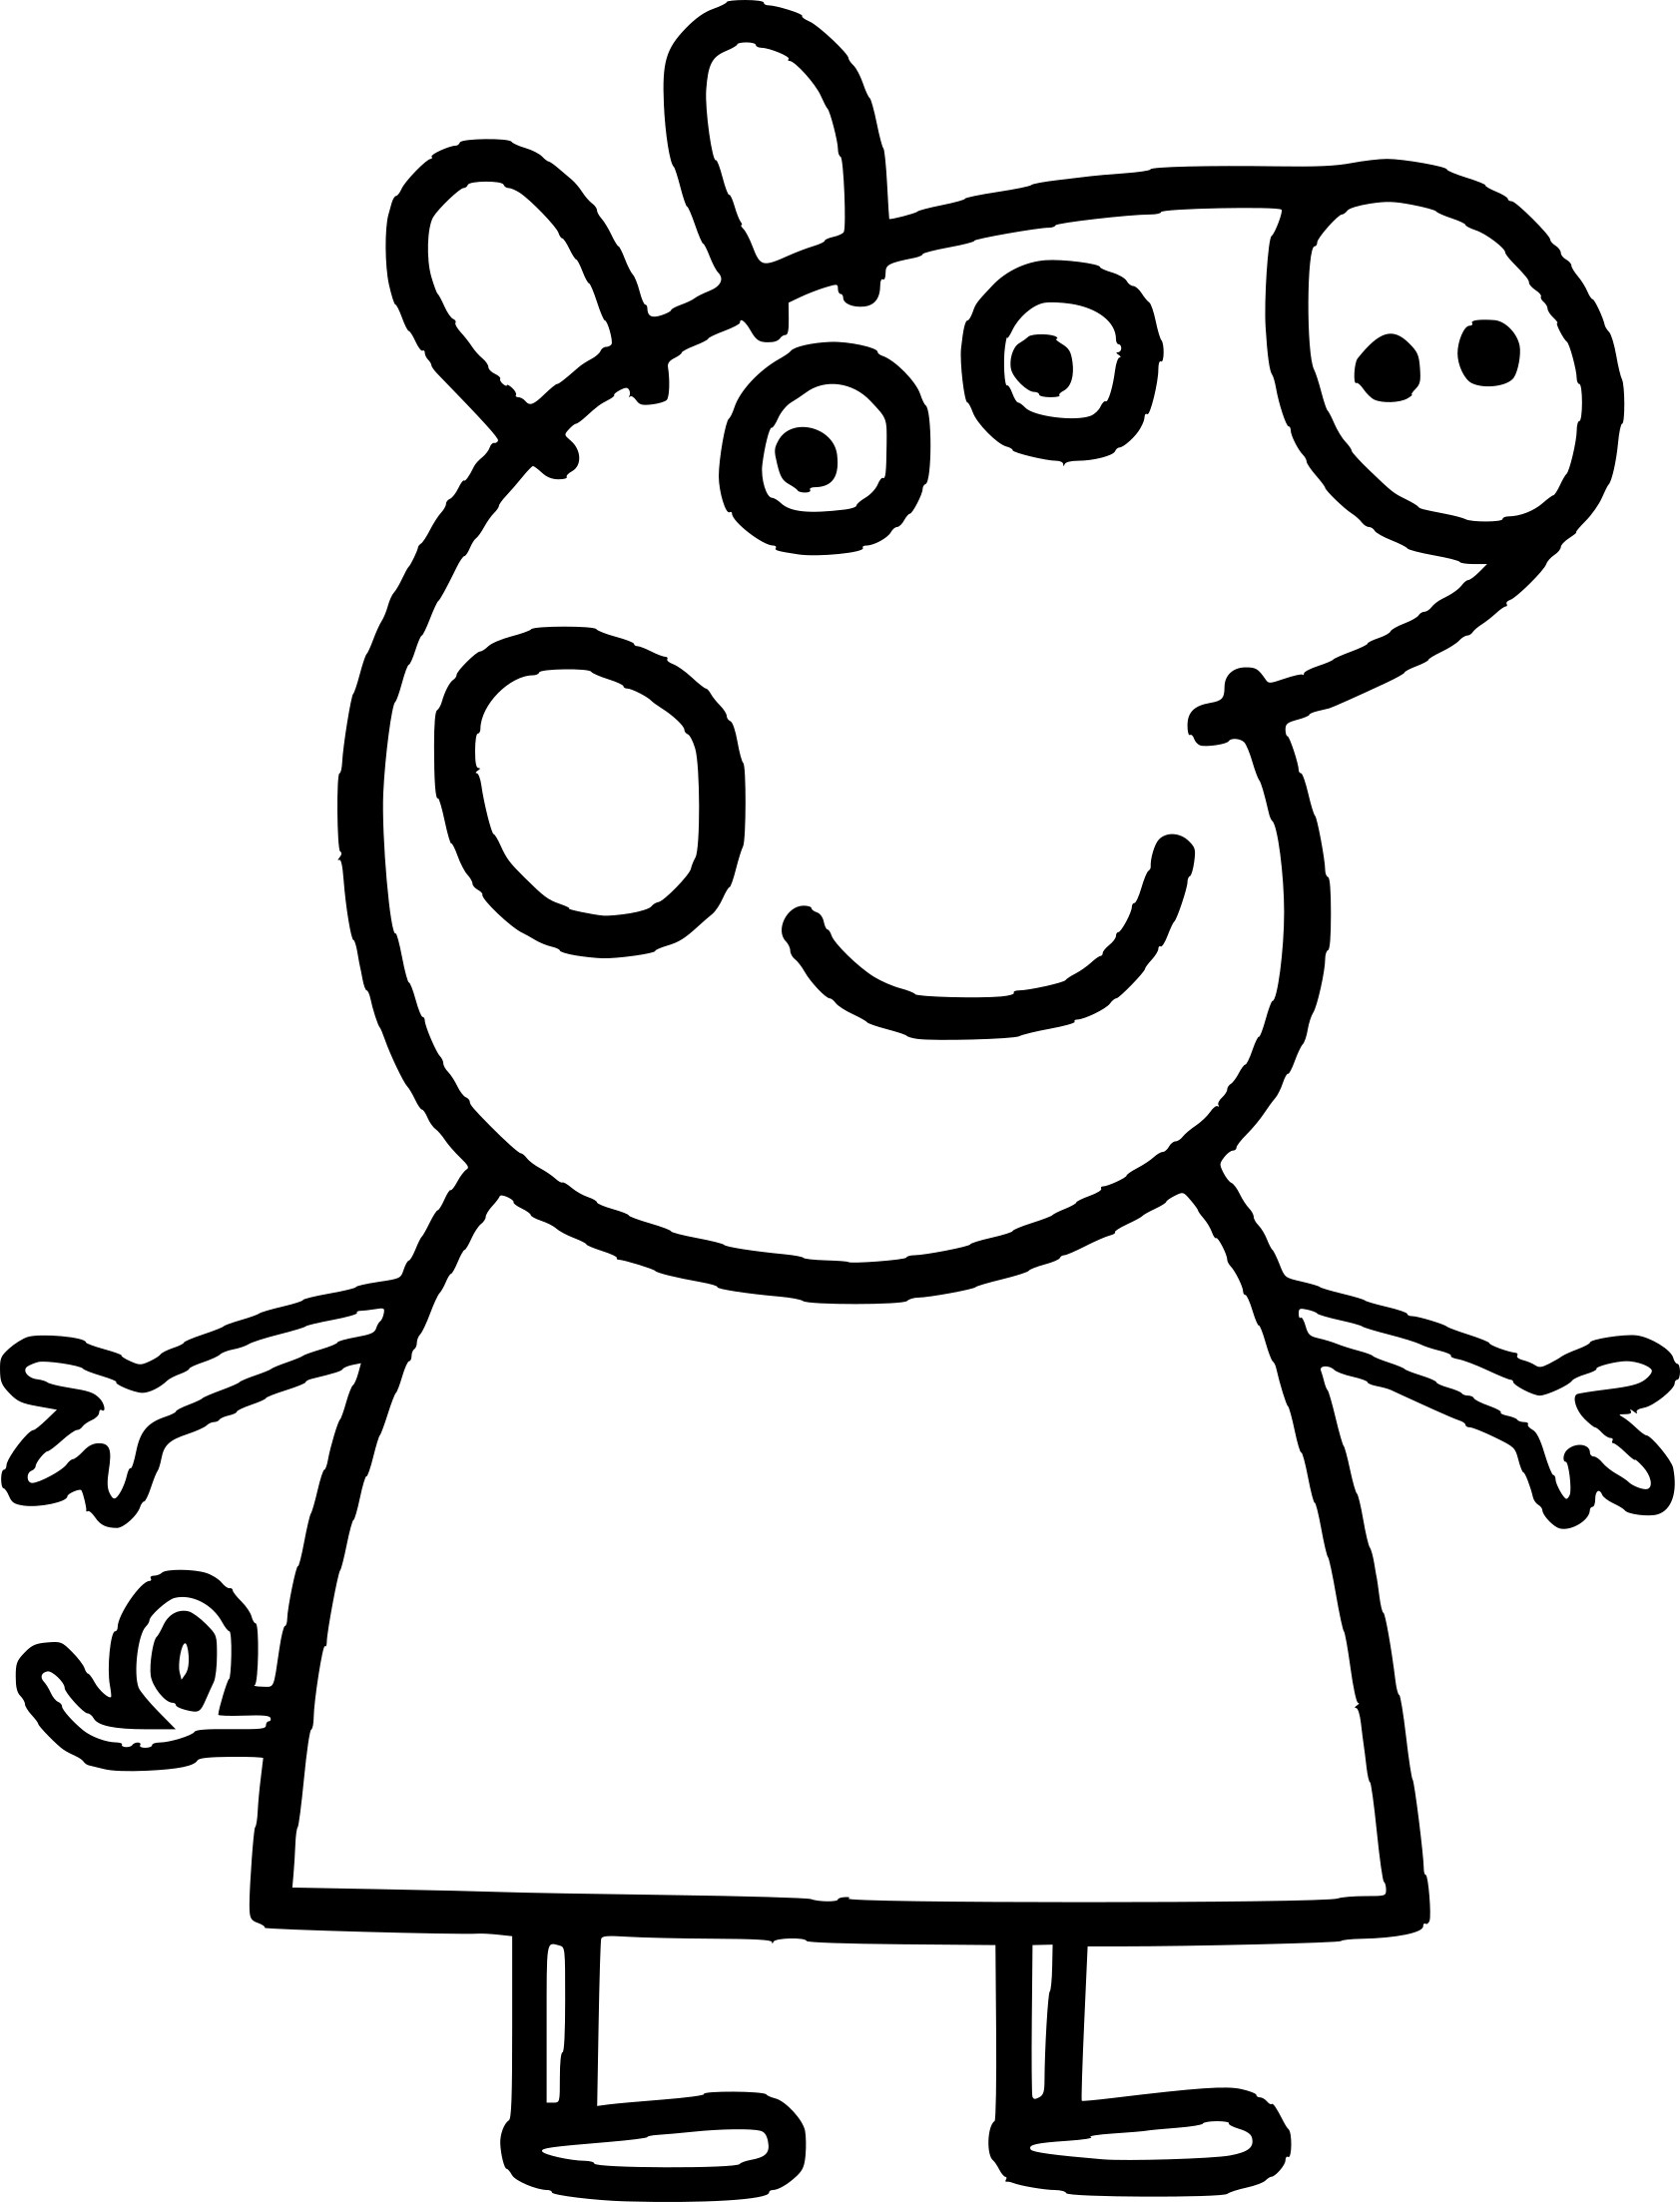 Frais Dessins A Colorier Peppa Pig